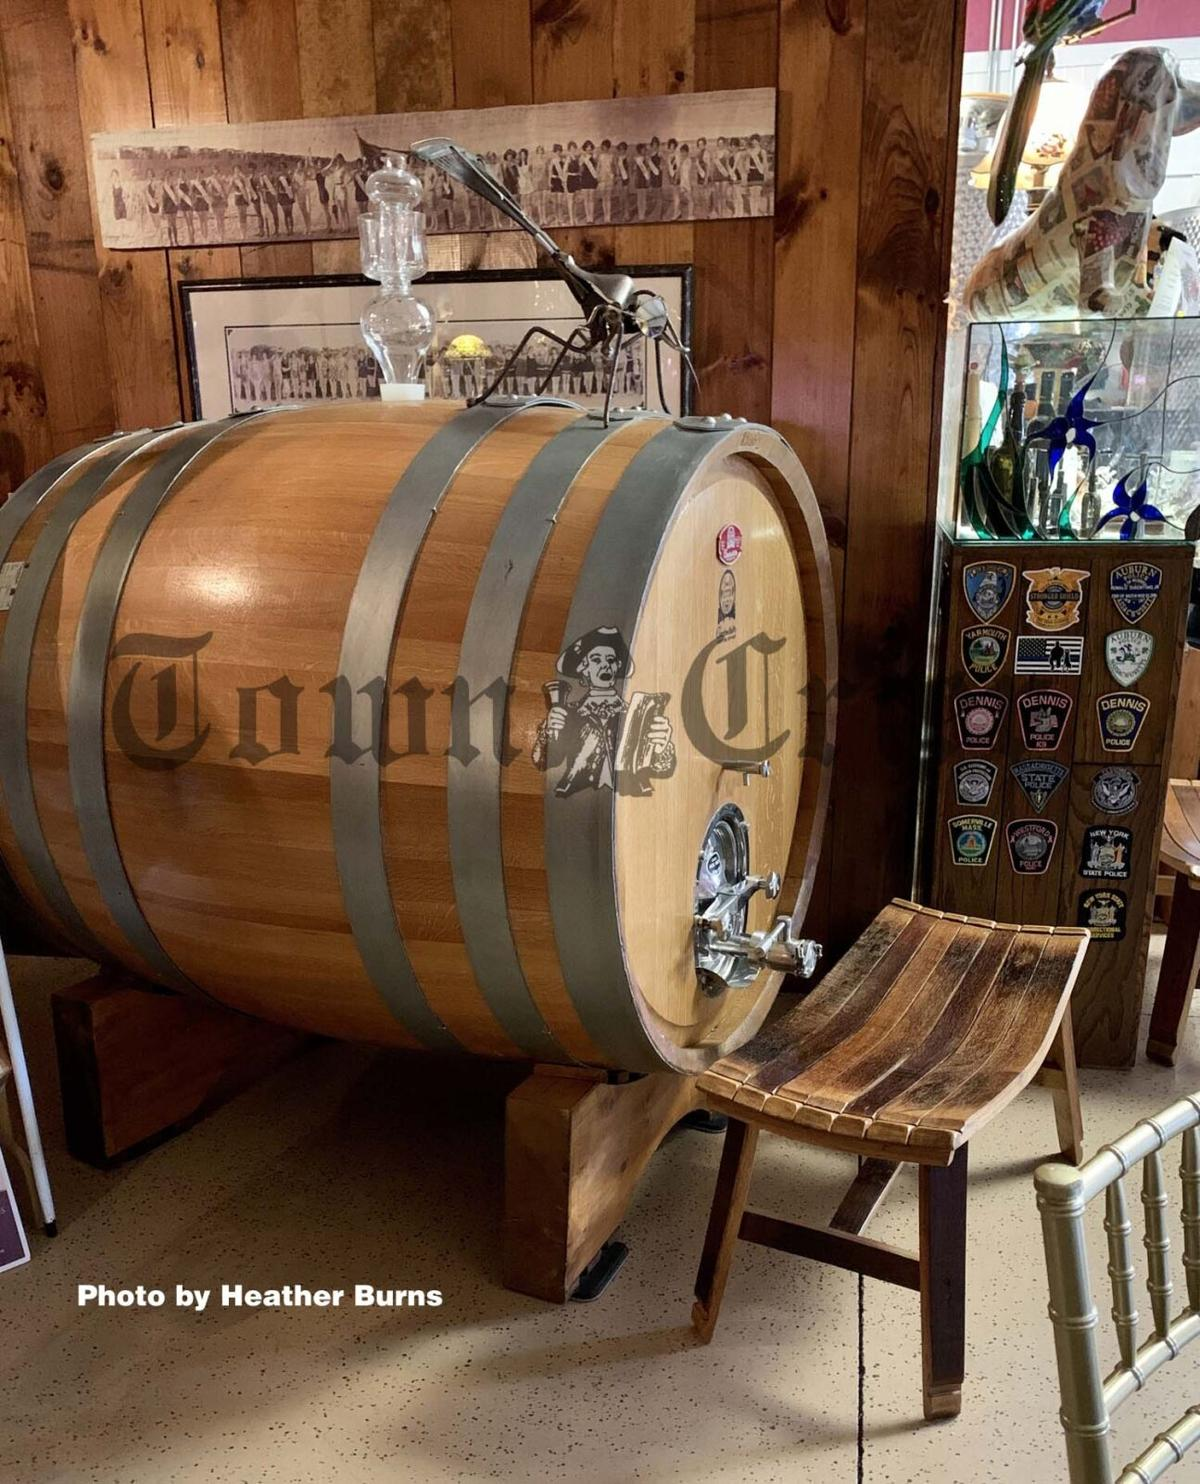 A wood wine barrel inside the First Crush Winery